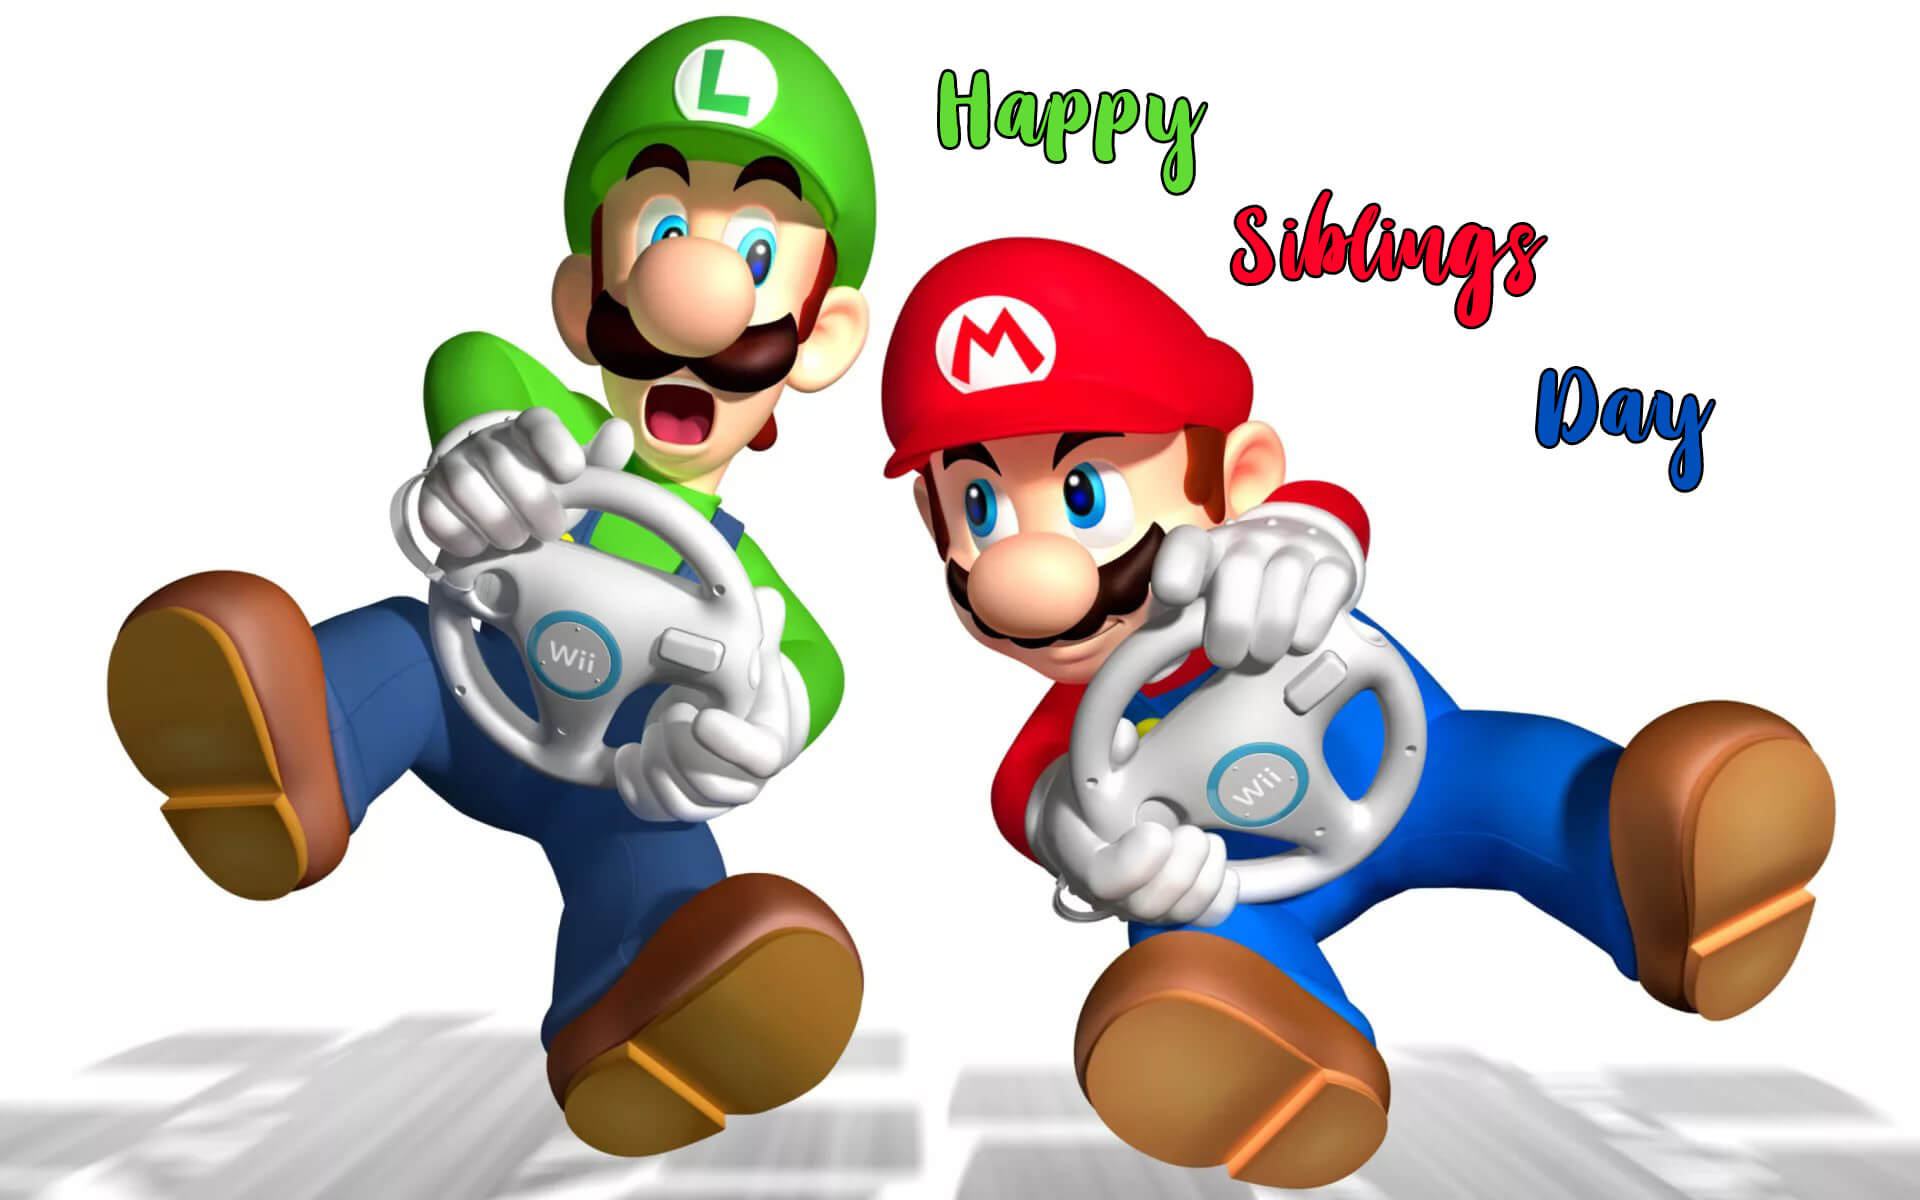 happy national siblings day mario luigi brothers hd wallpaper